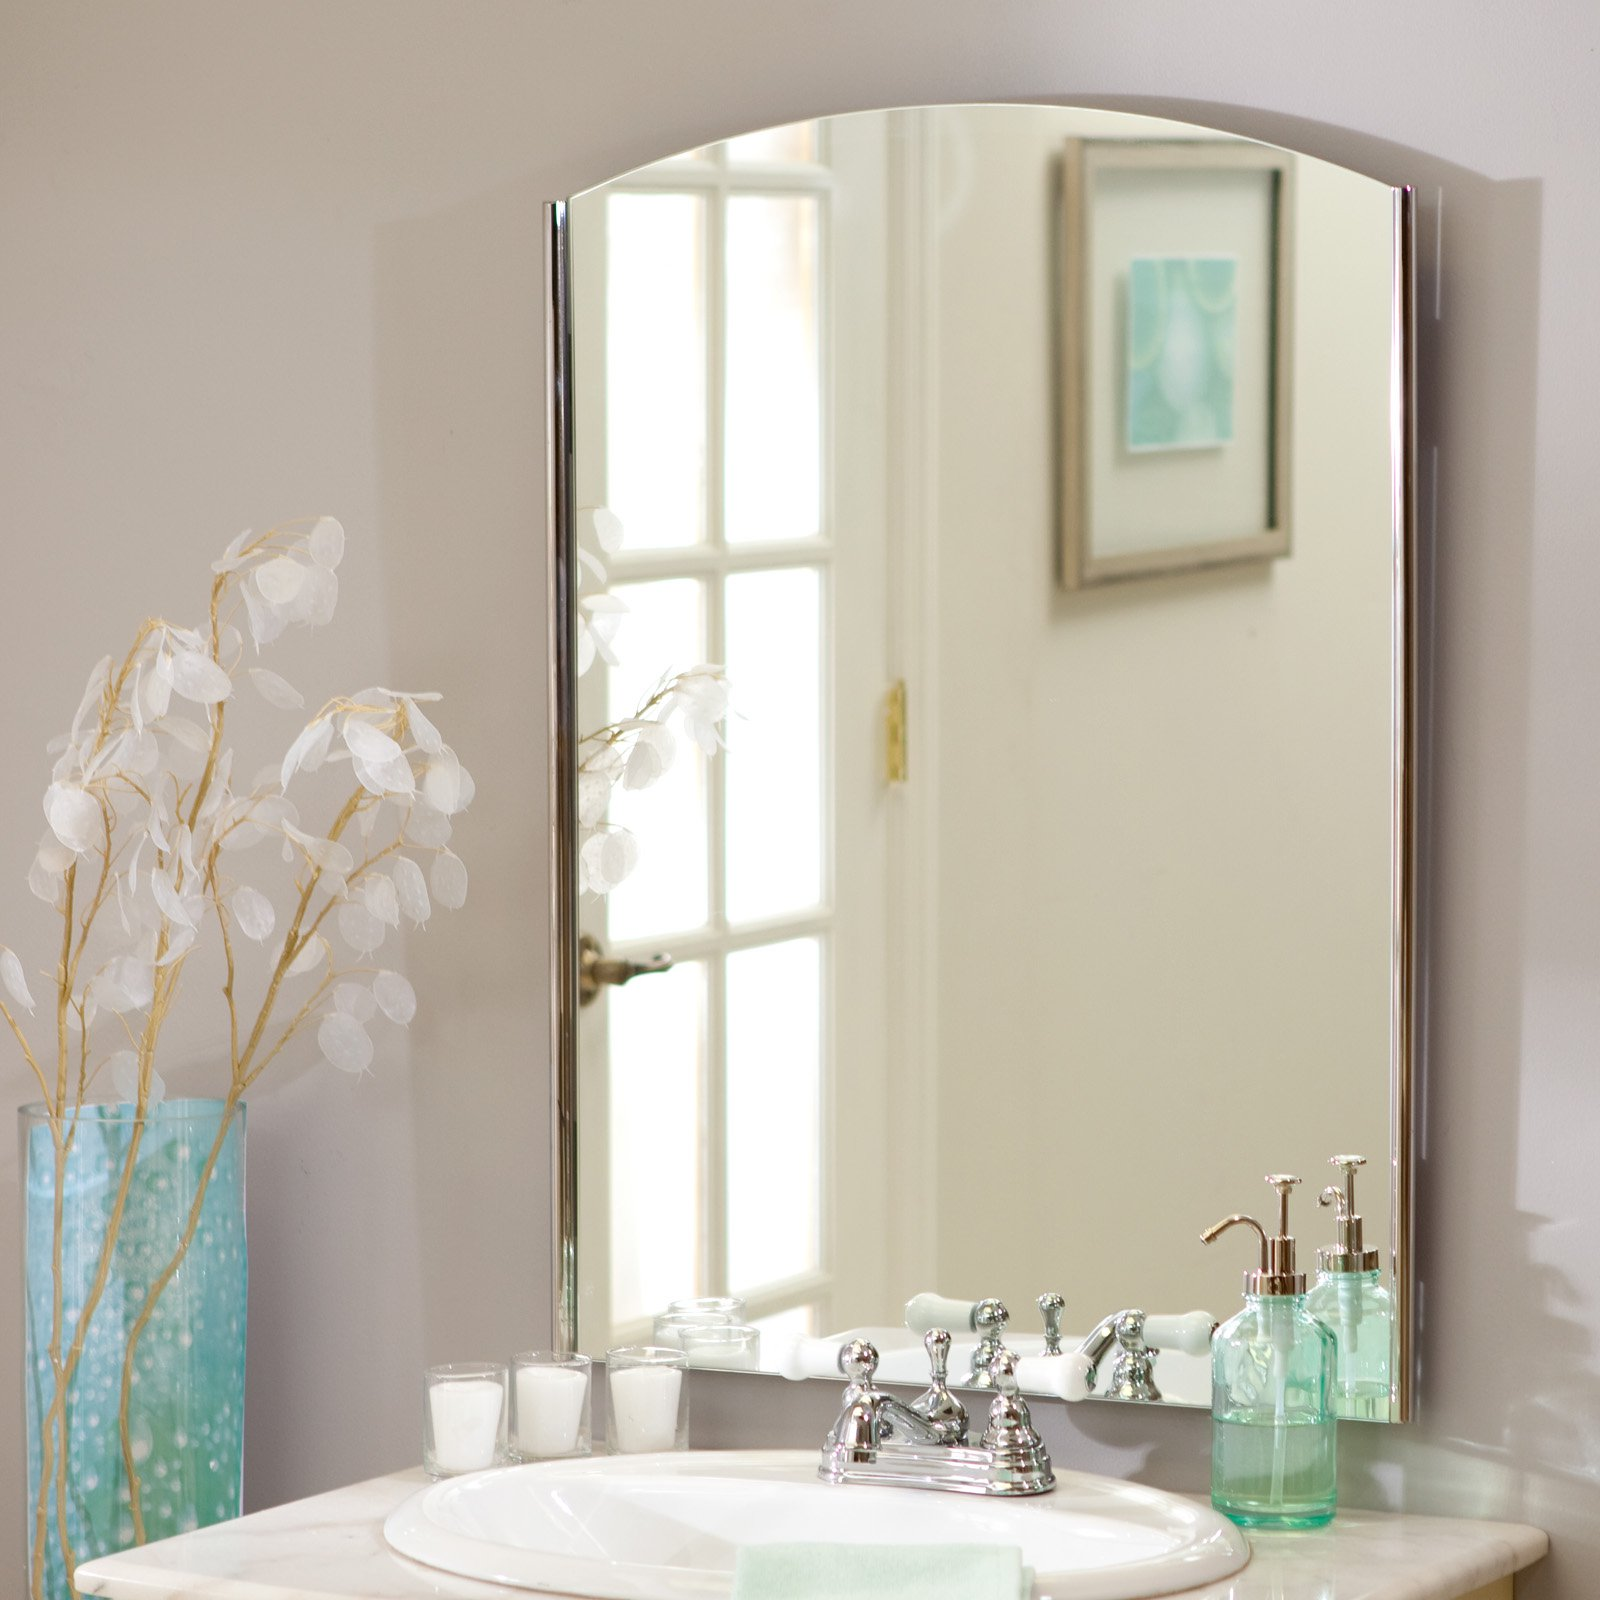 Décor Wonderland Frameless Vista Wall Mirror 22W x 29.5H in. by Decor Wonderland